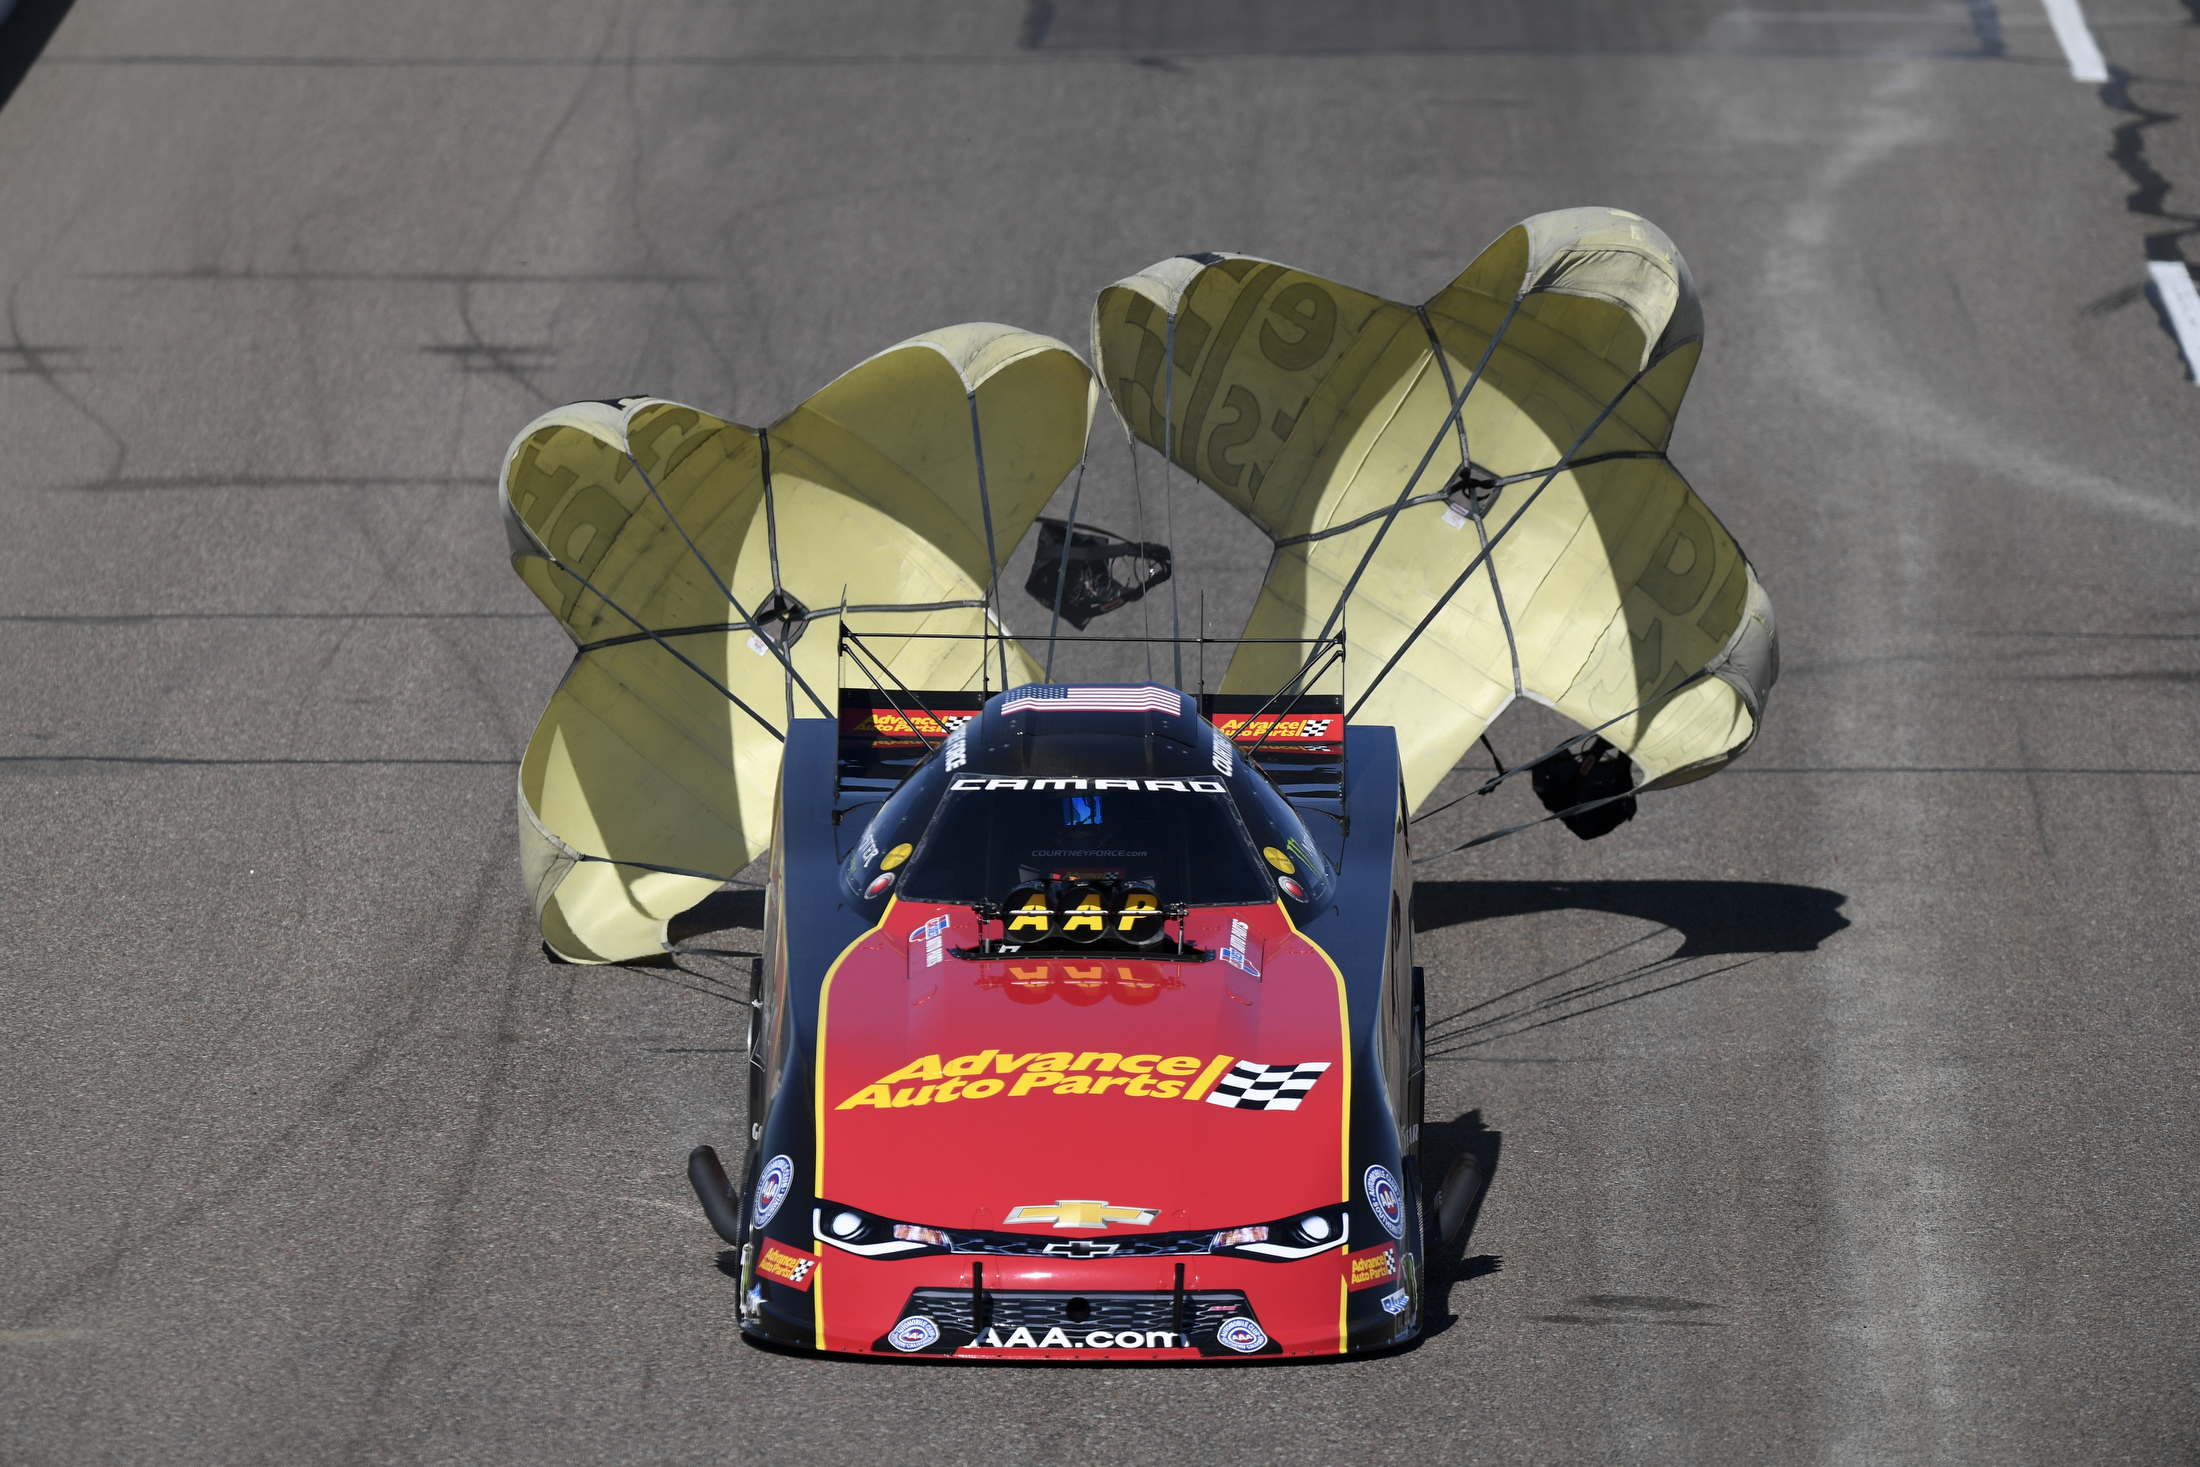 Former Funny Car pilot Courtney Force racing on Sunday at the 2018 NHRA Arizona Nationals